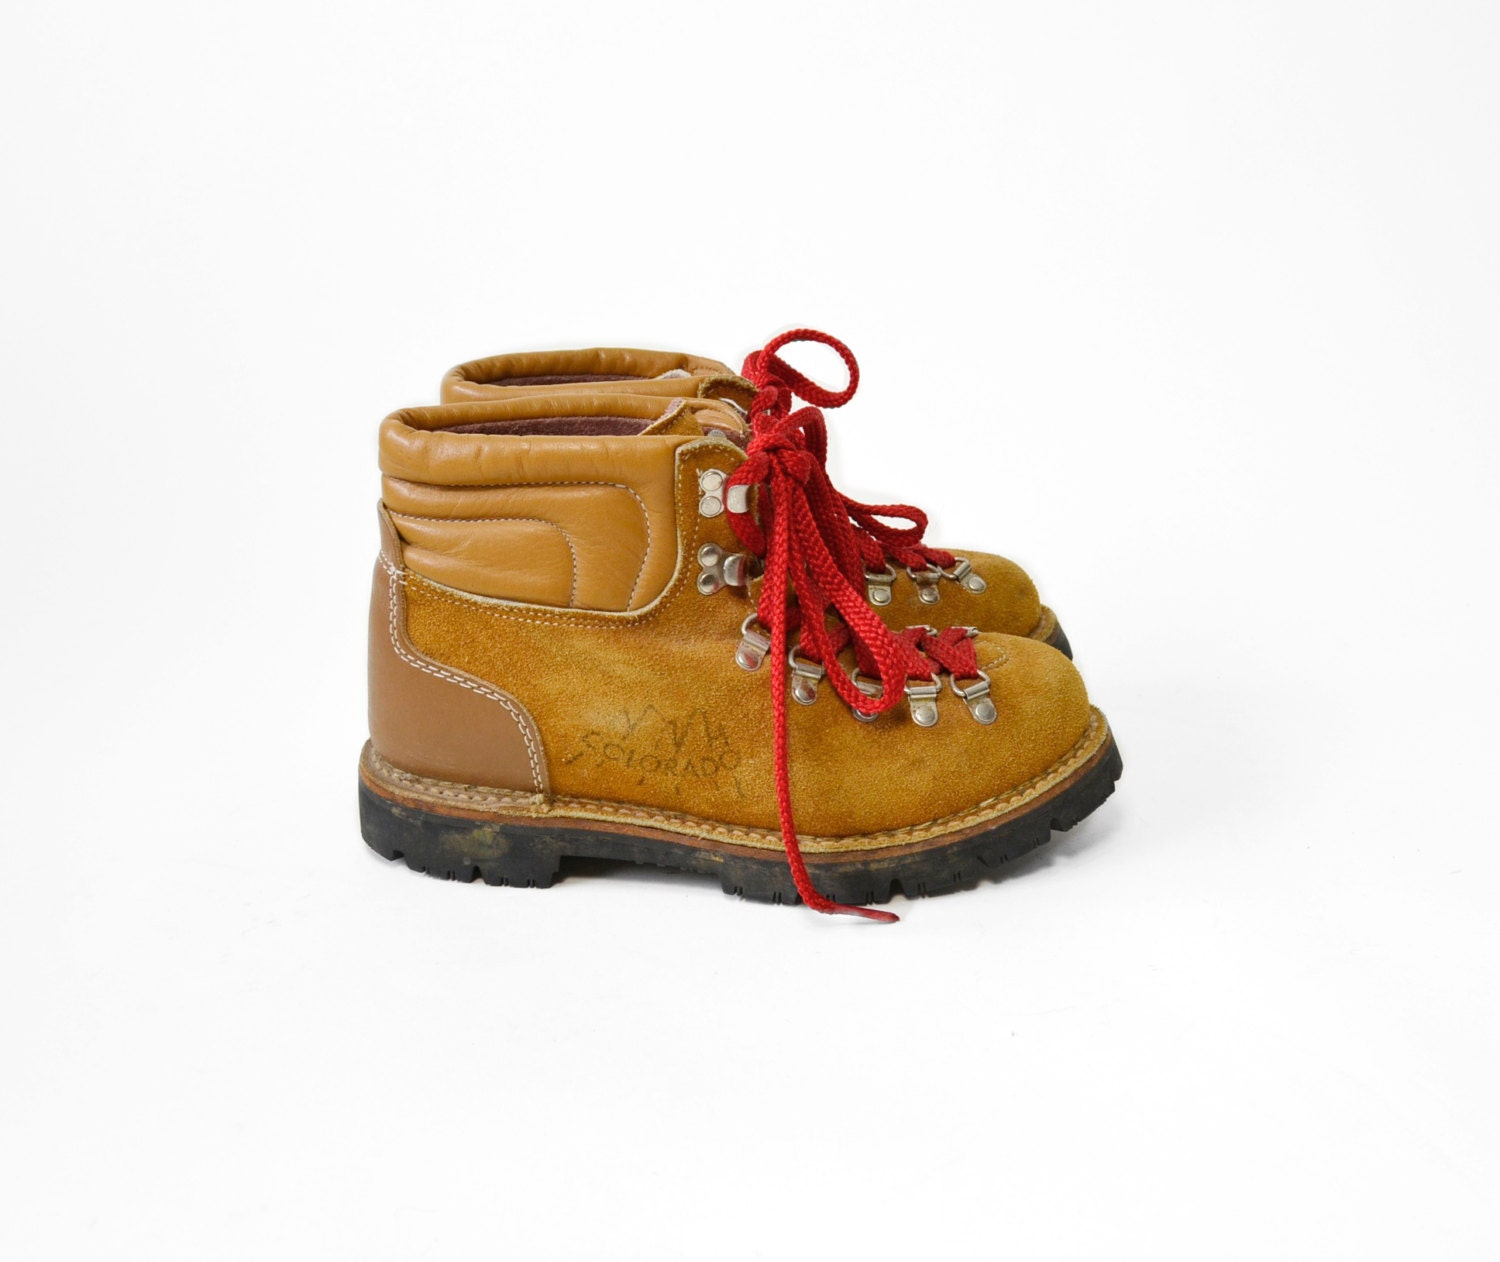 Vintage Tan Leather Hiking Boots With Red Laces Men S